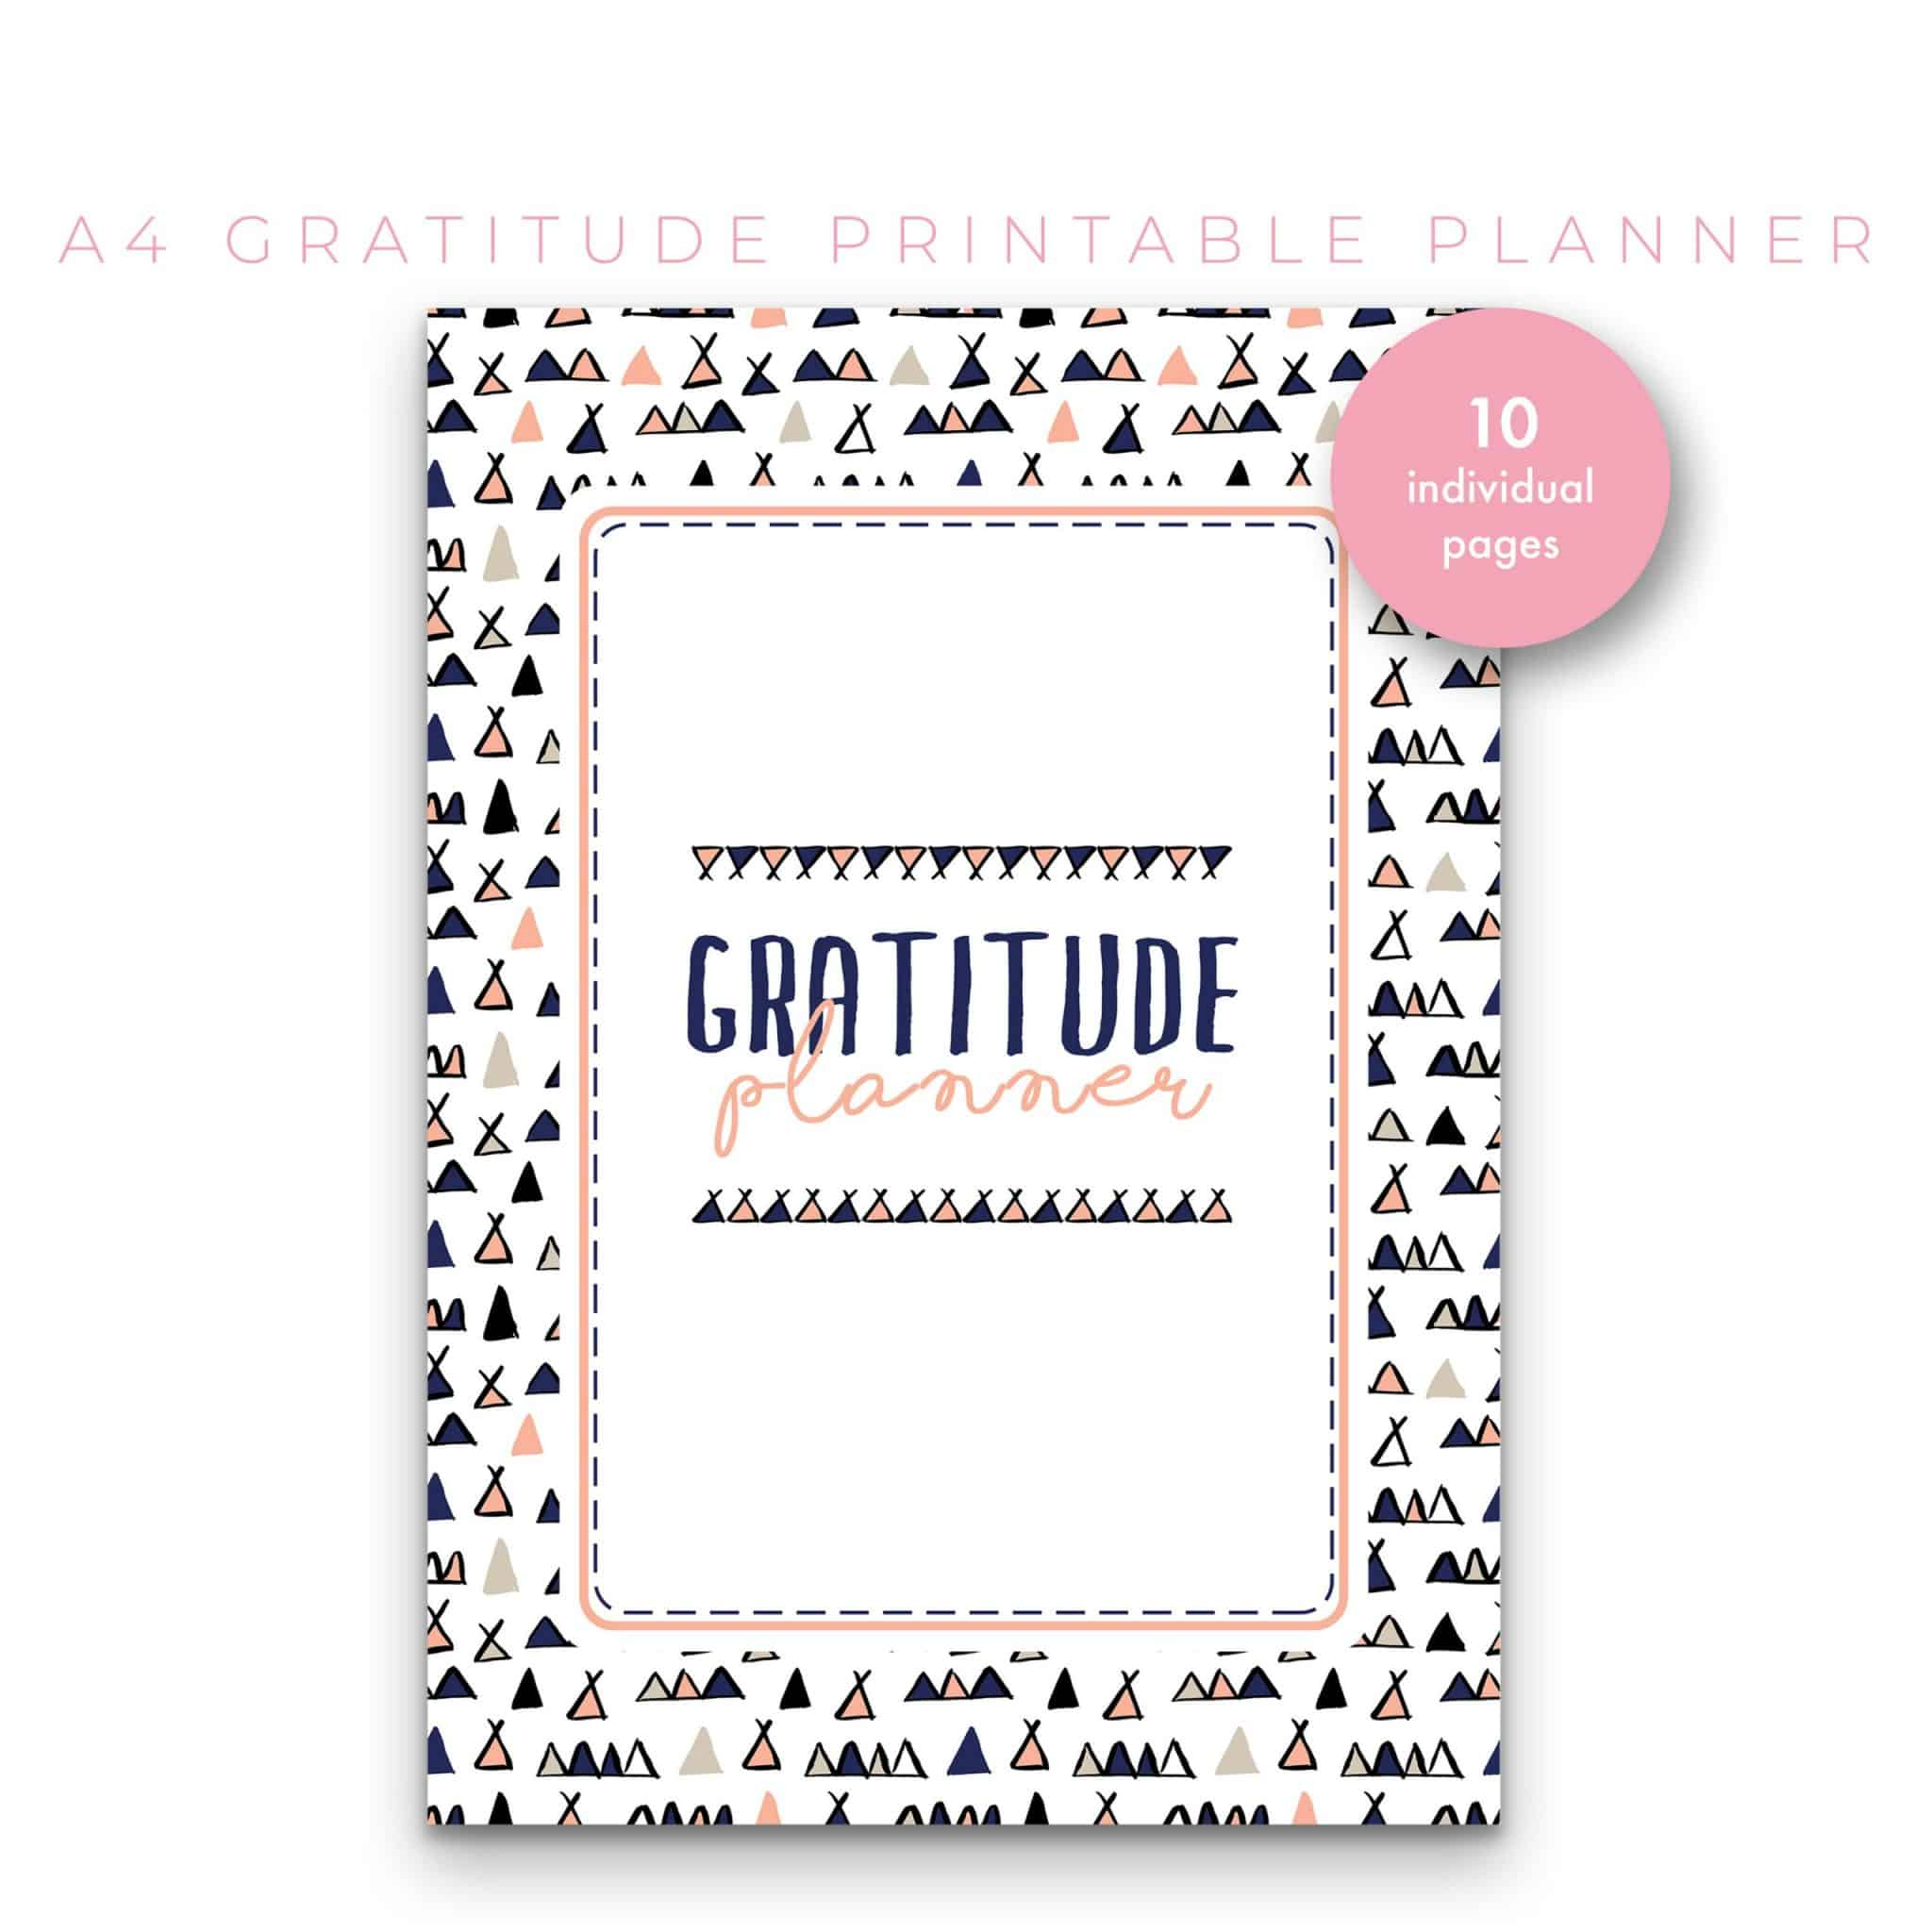 The Ultimate Gratitude Planner 10 in 1 – Navy and Peach